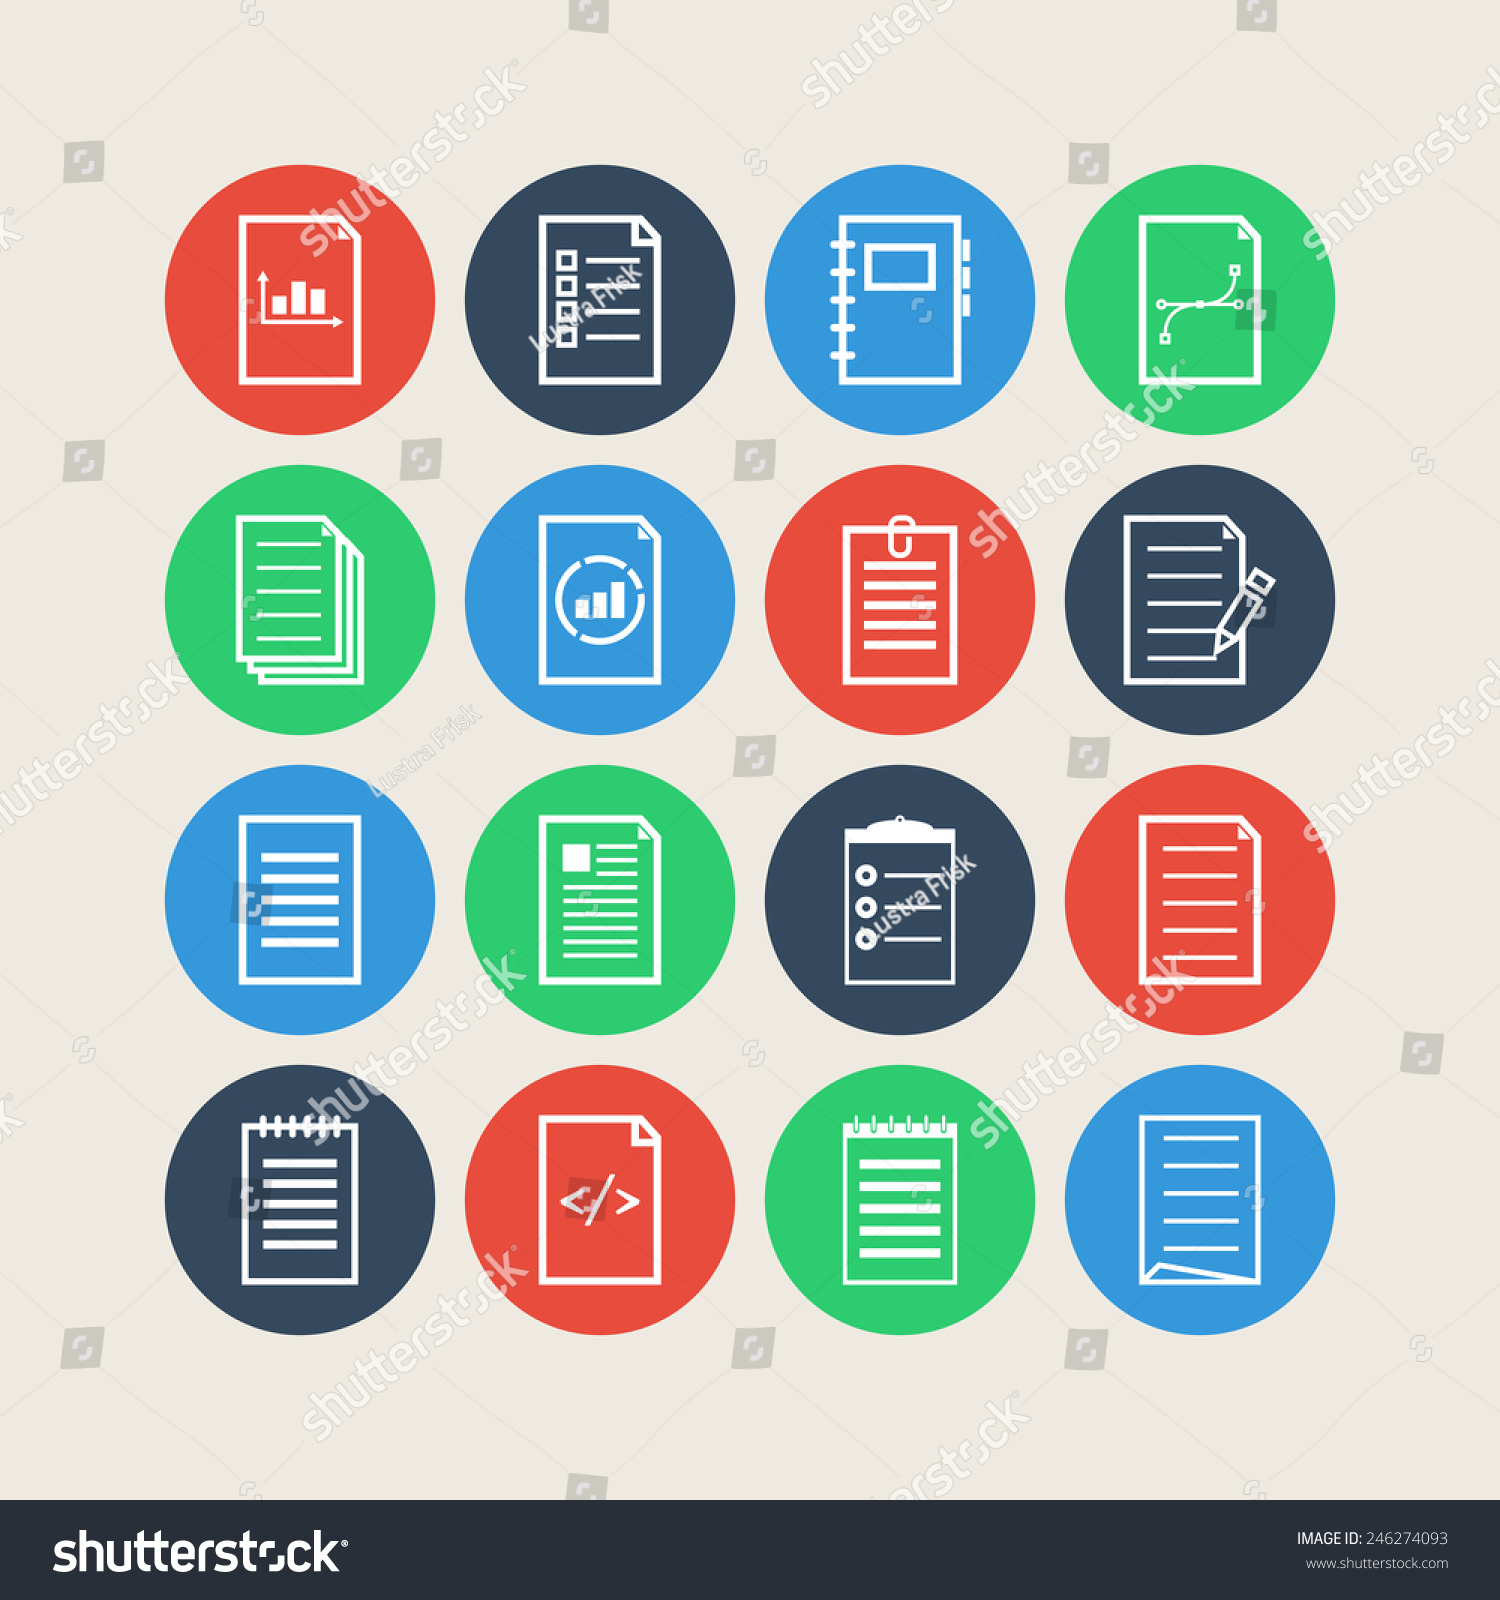 Set of simple document icons for web design sites applications business and stickers